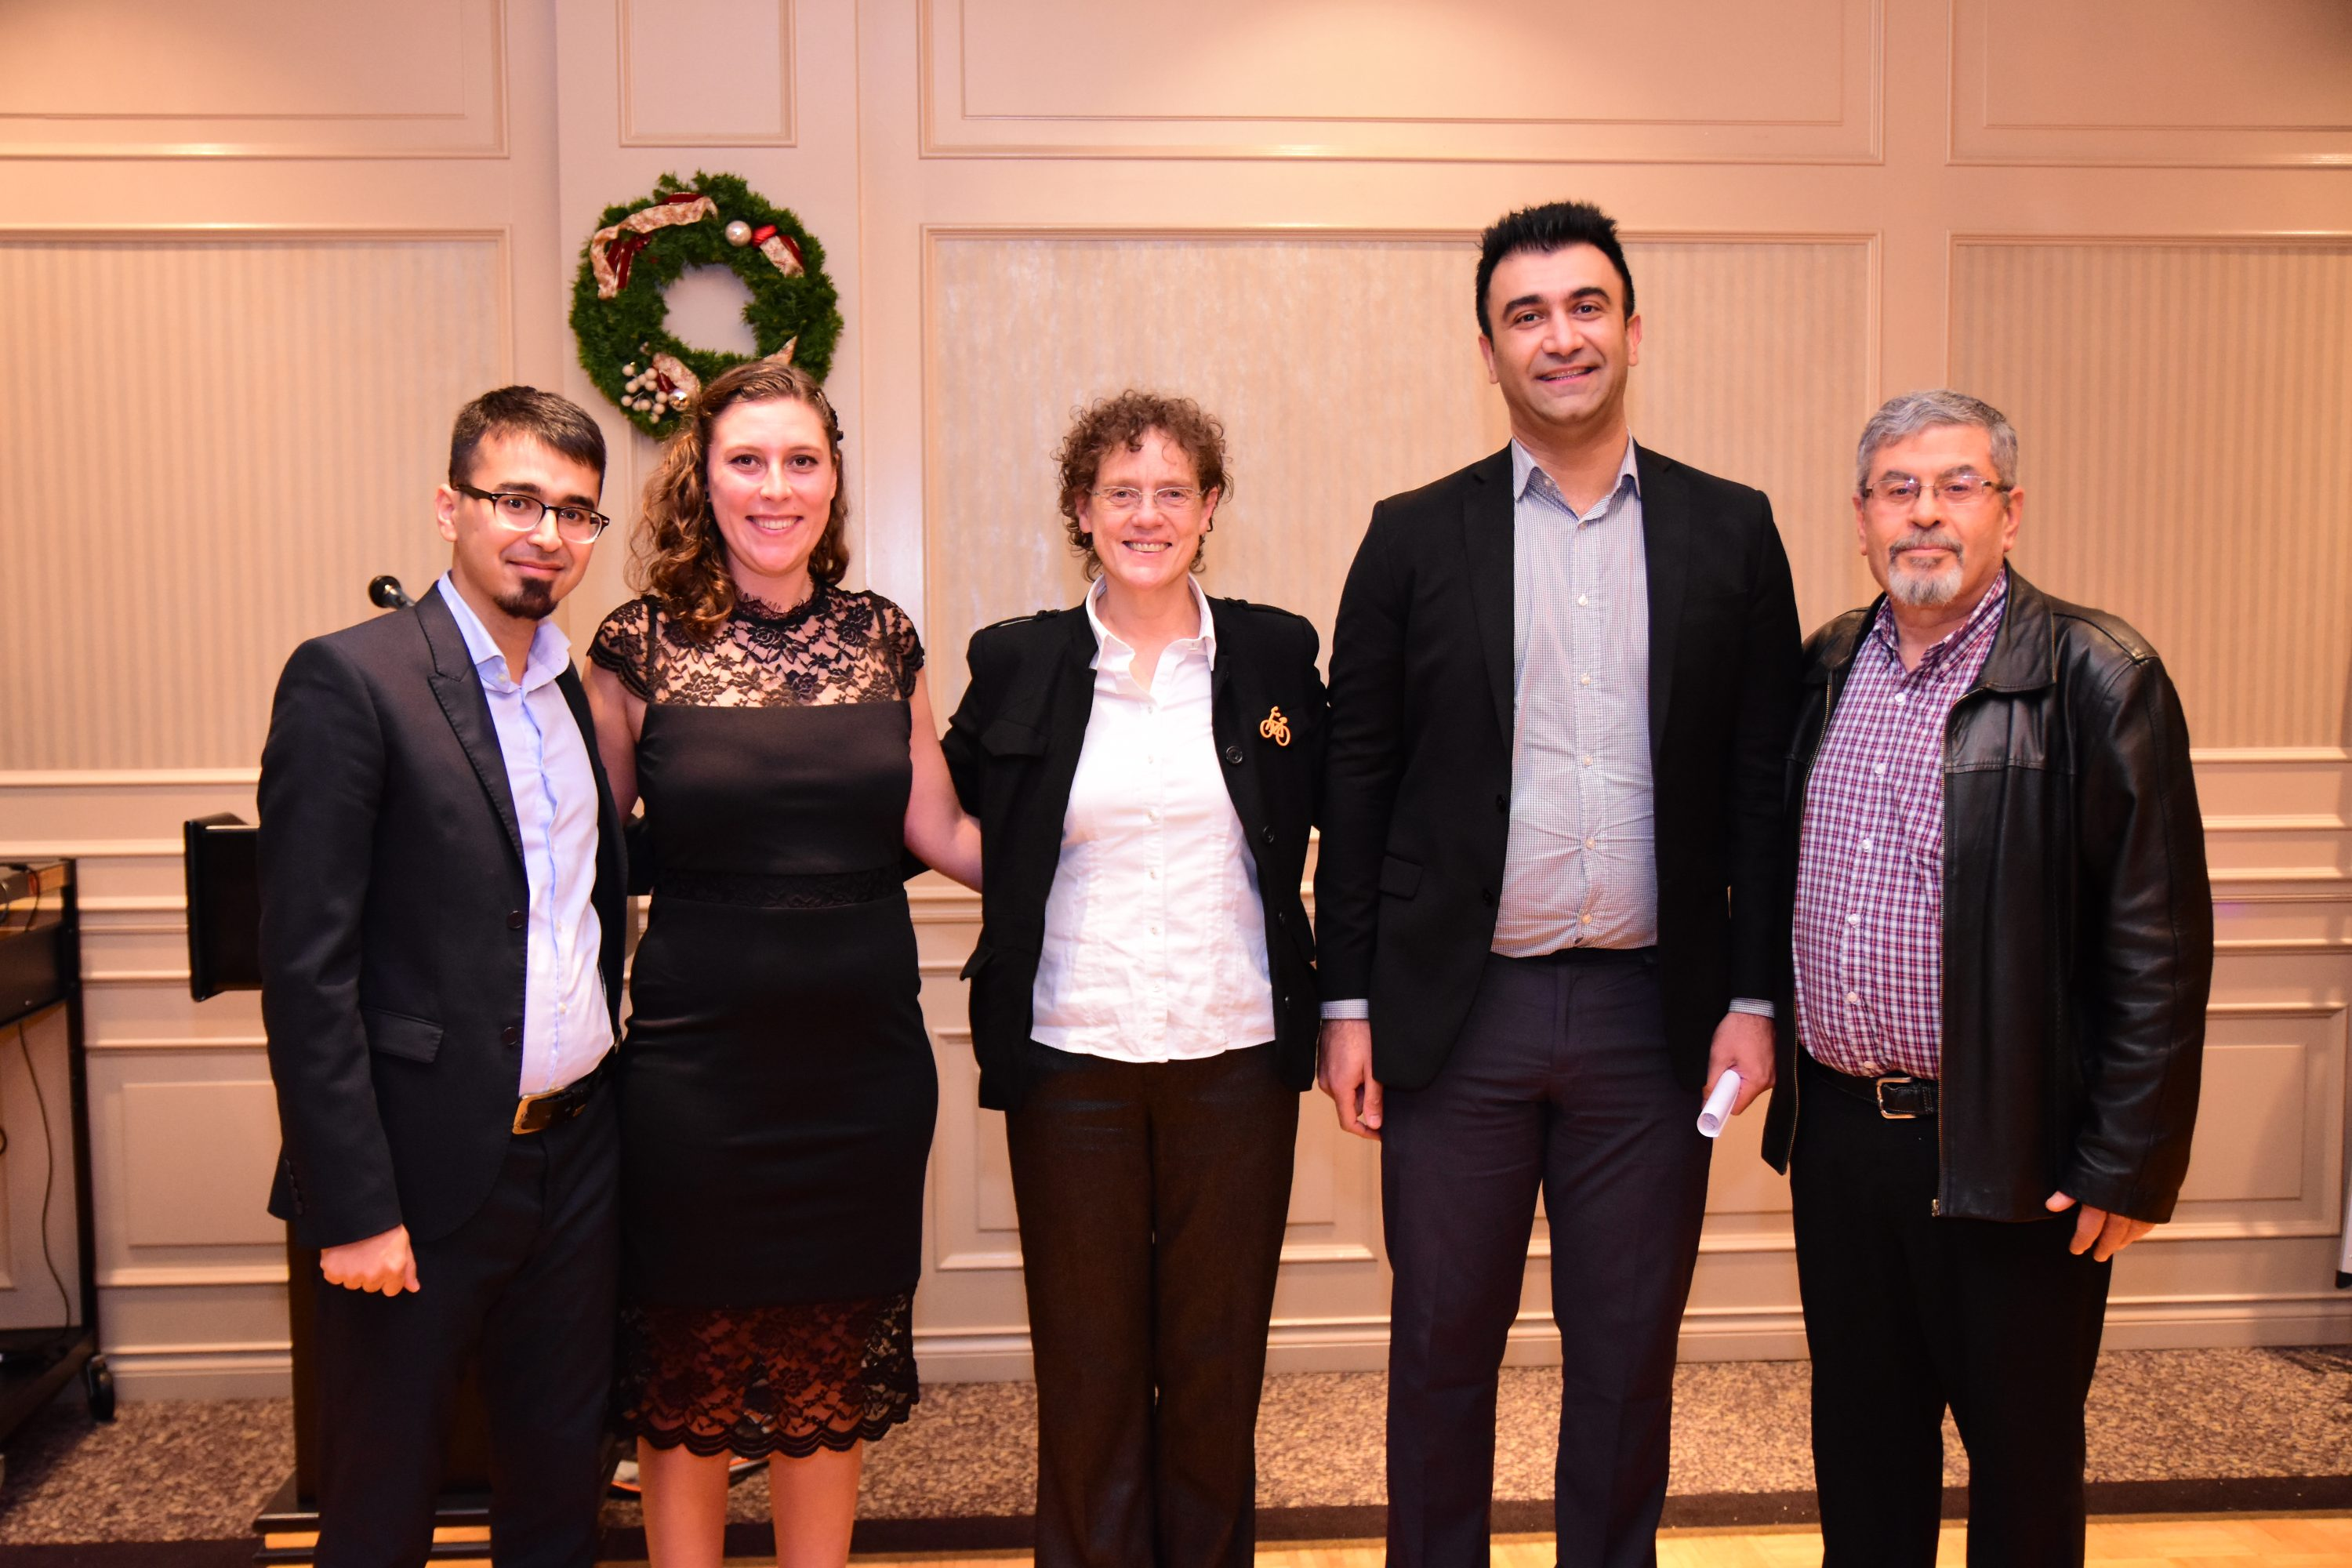 MEL and MHLP Graduation Gala: MEL in Integrated Water Management Graduates with Program Co-Directors Dr. Sue Baldwin and Dr. Ziad Shawwash